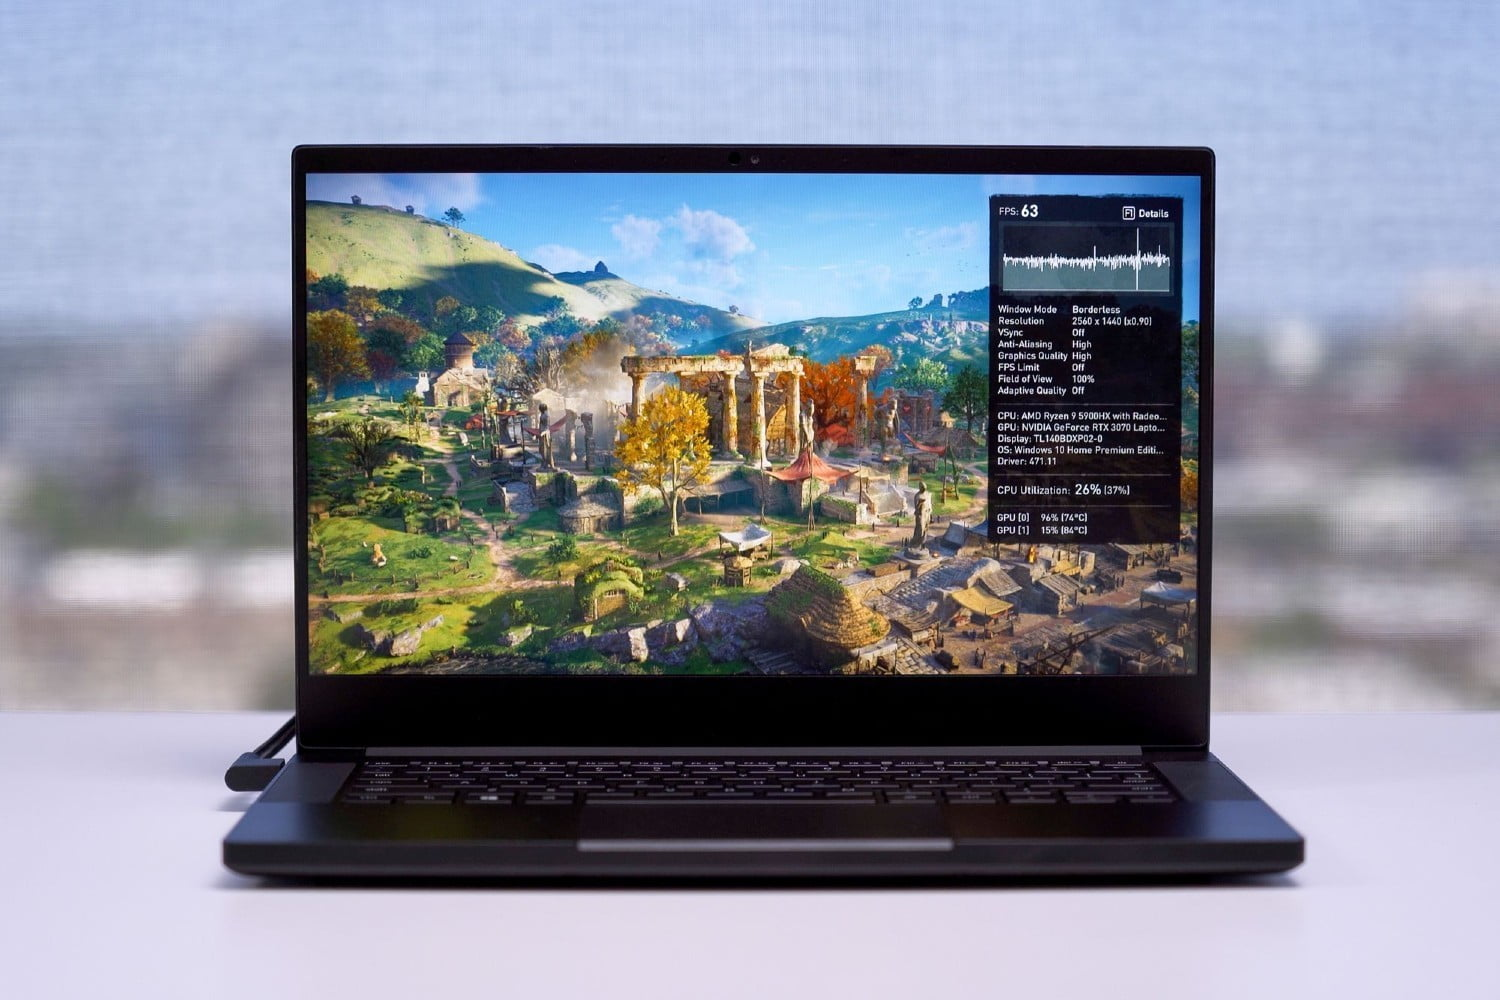 Razer Blade 14 front view showing display and keyboard deck.